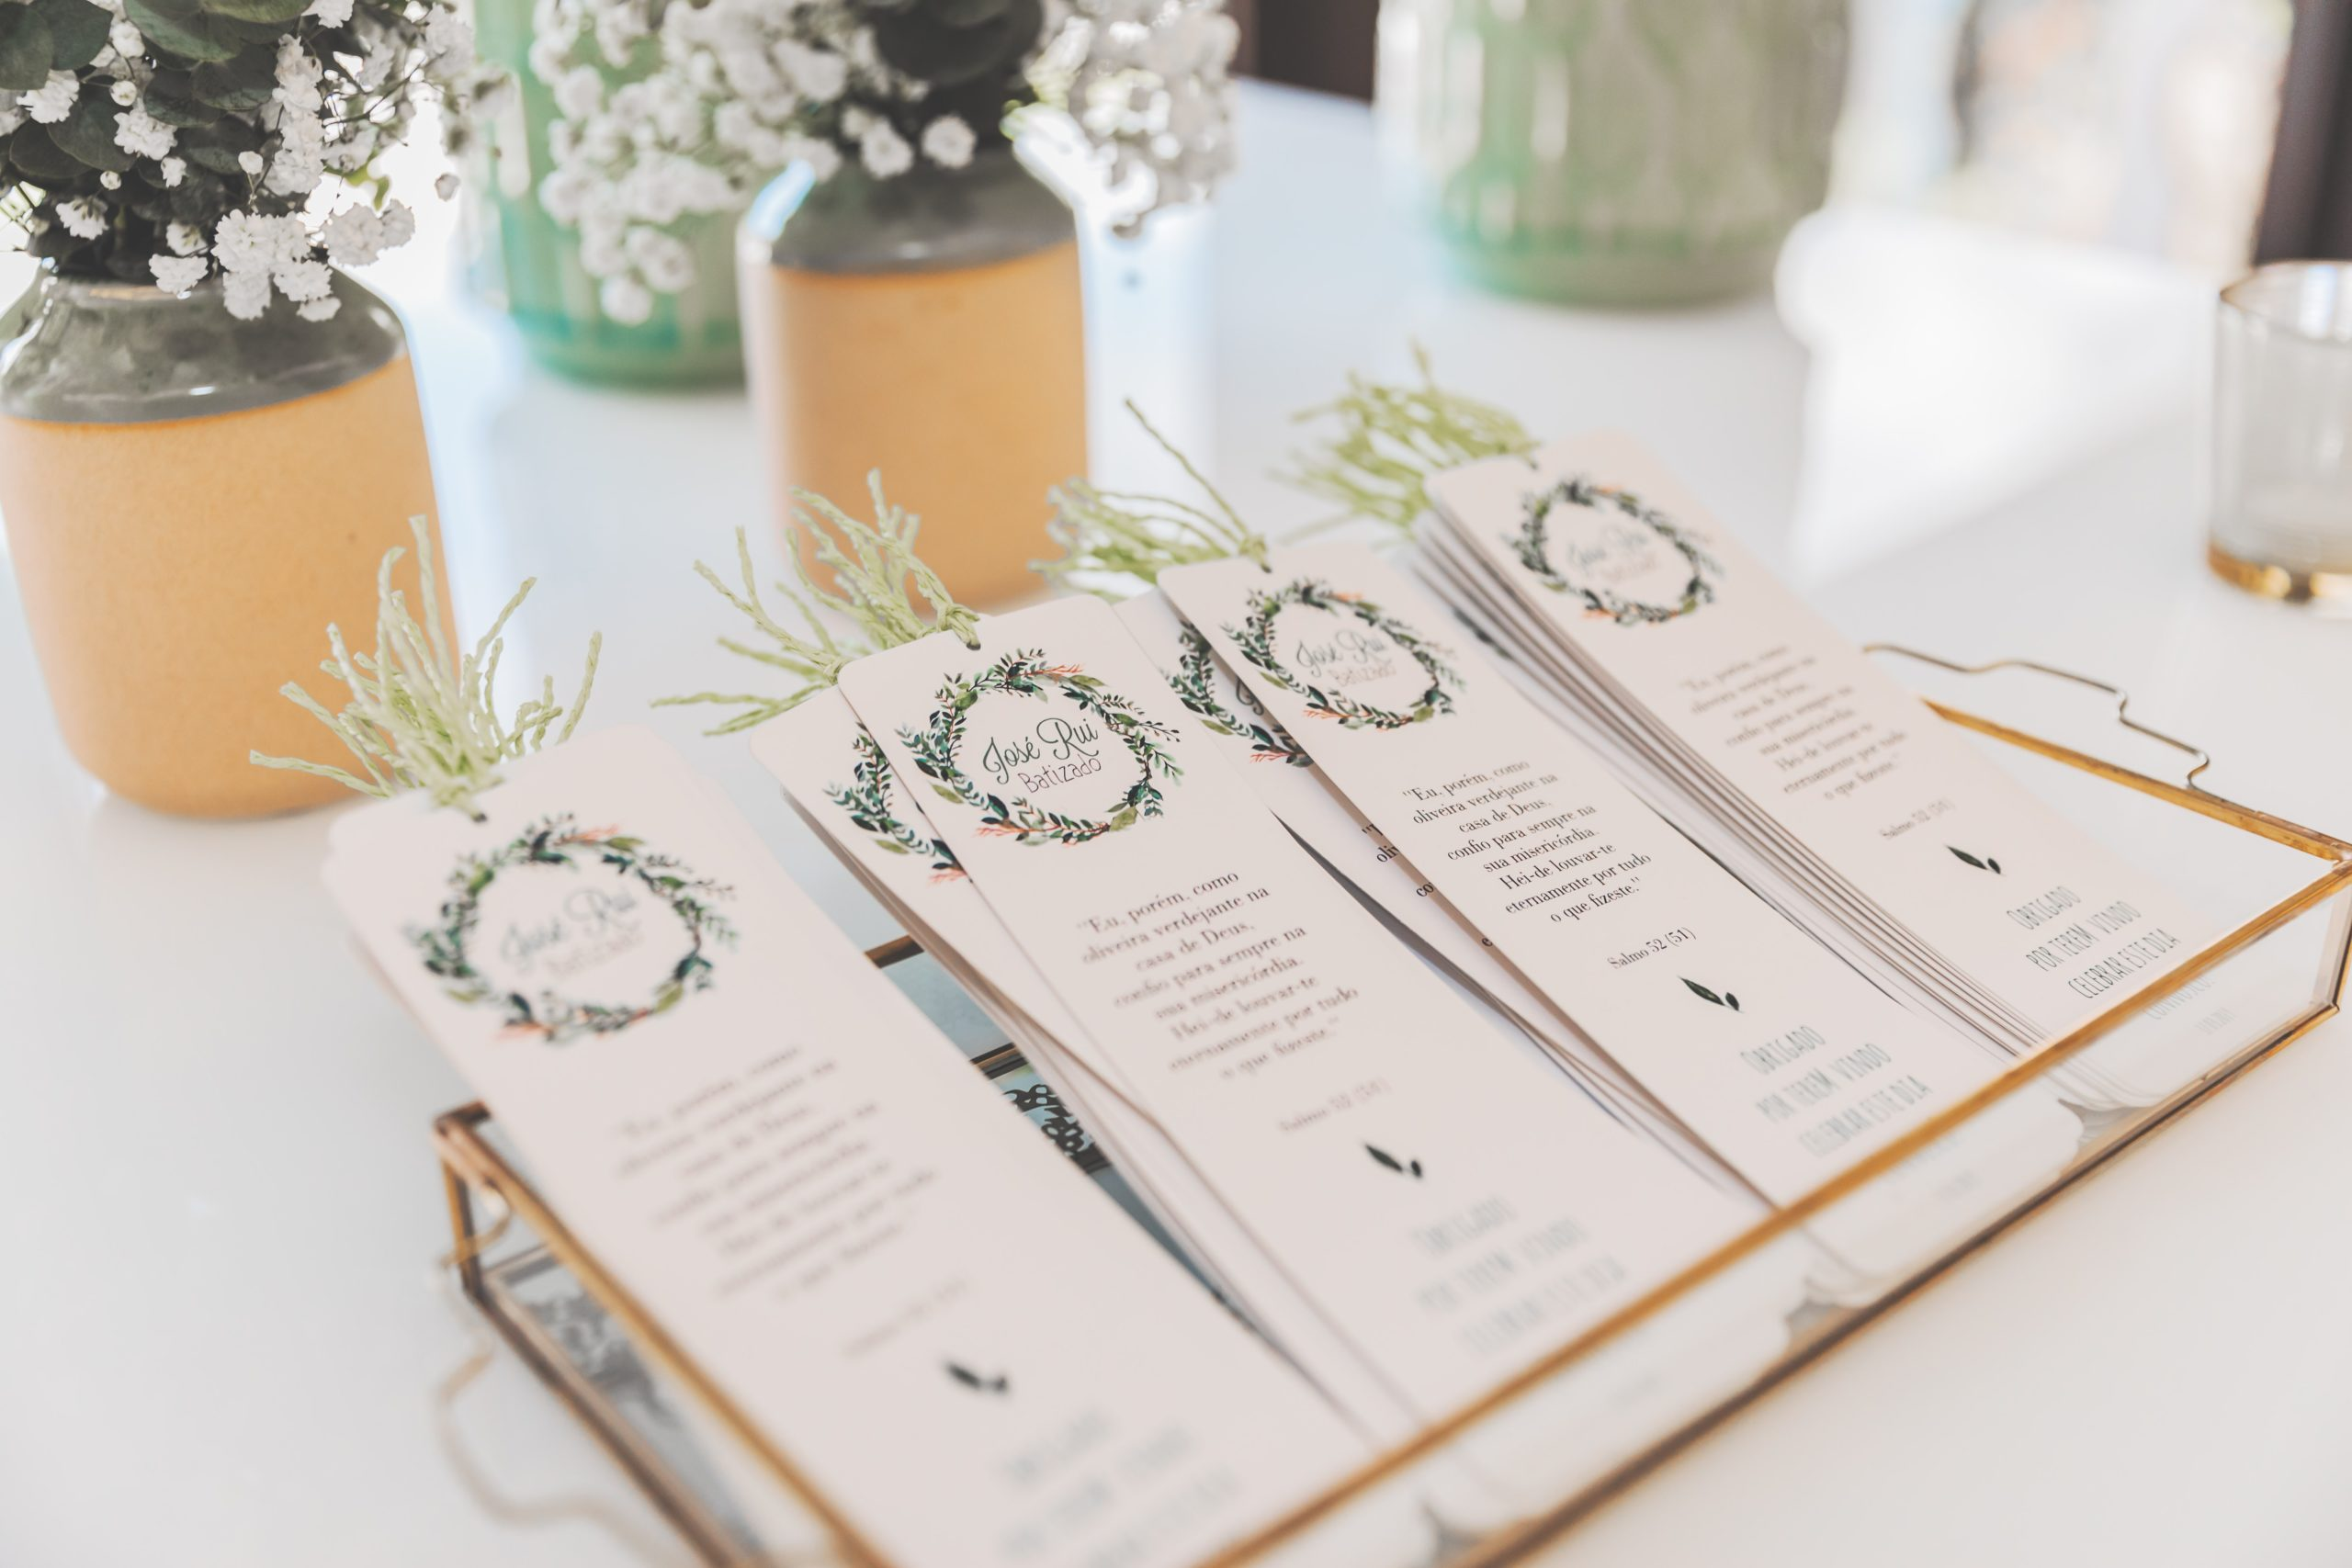 How to make your wedding invitations unique